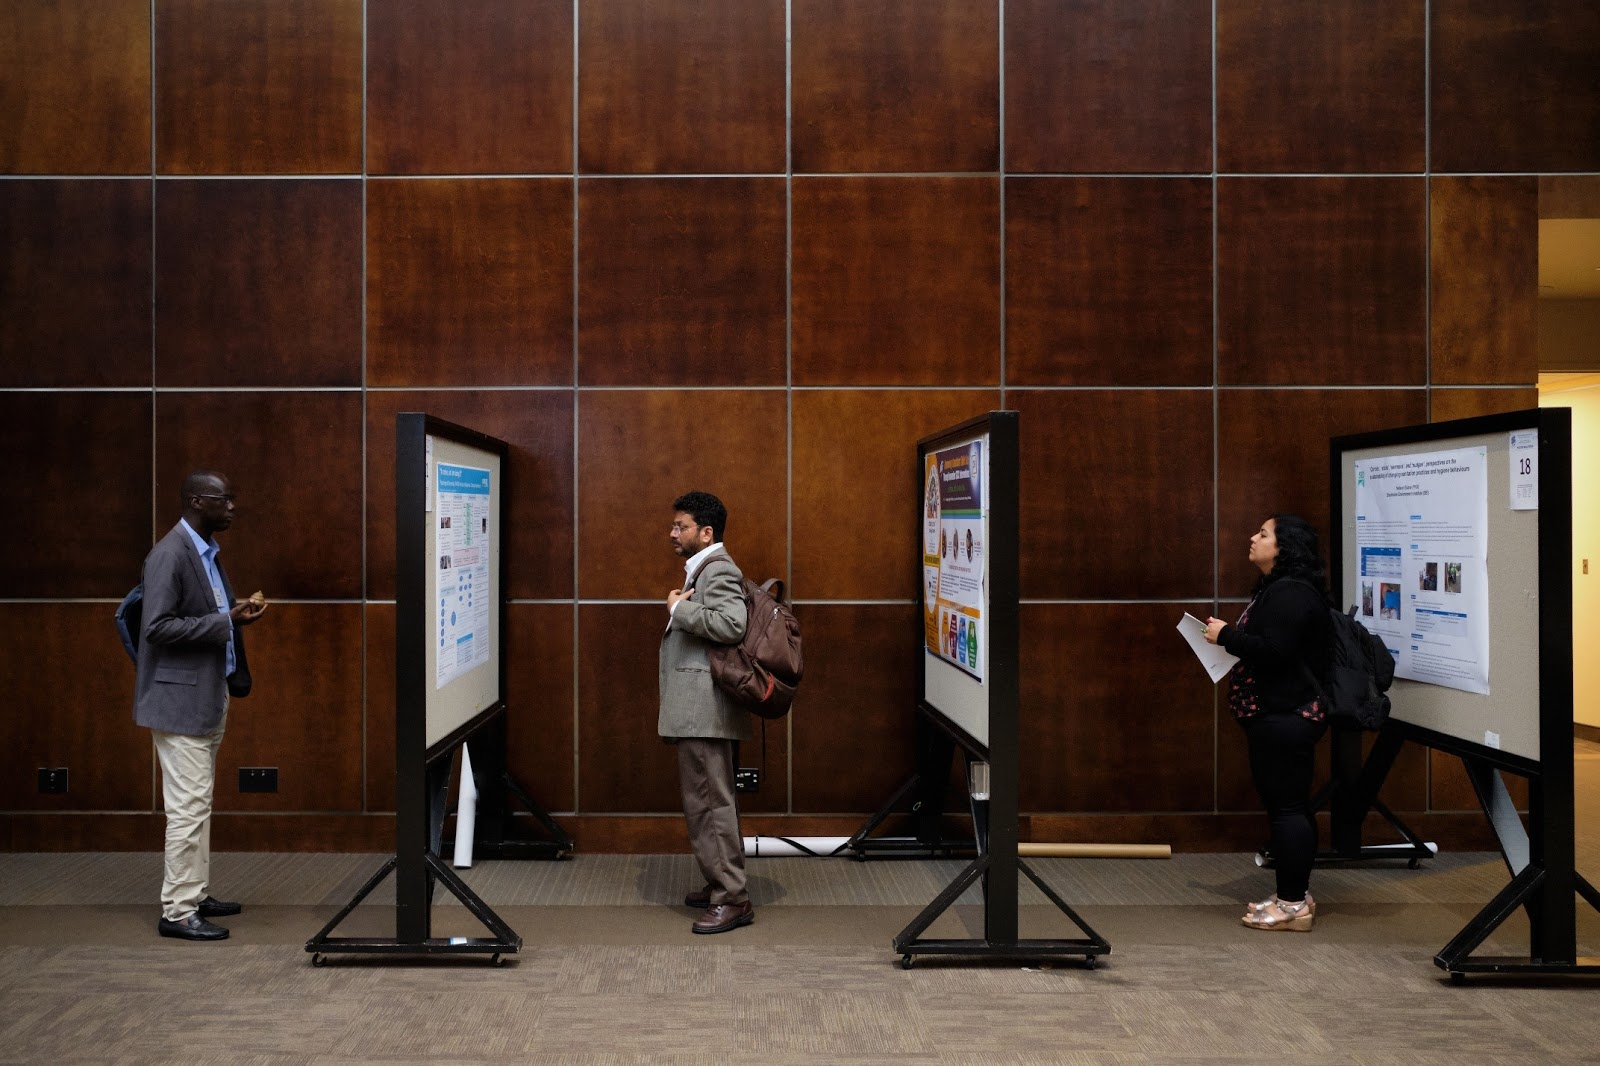 Poster sessions took place virtually at this year's Water and Health Conference. Photo credit: UNC Water Institute